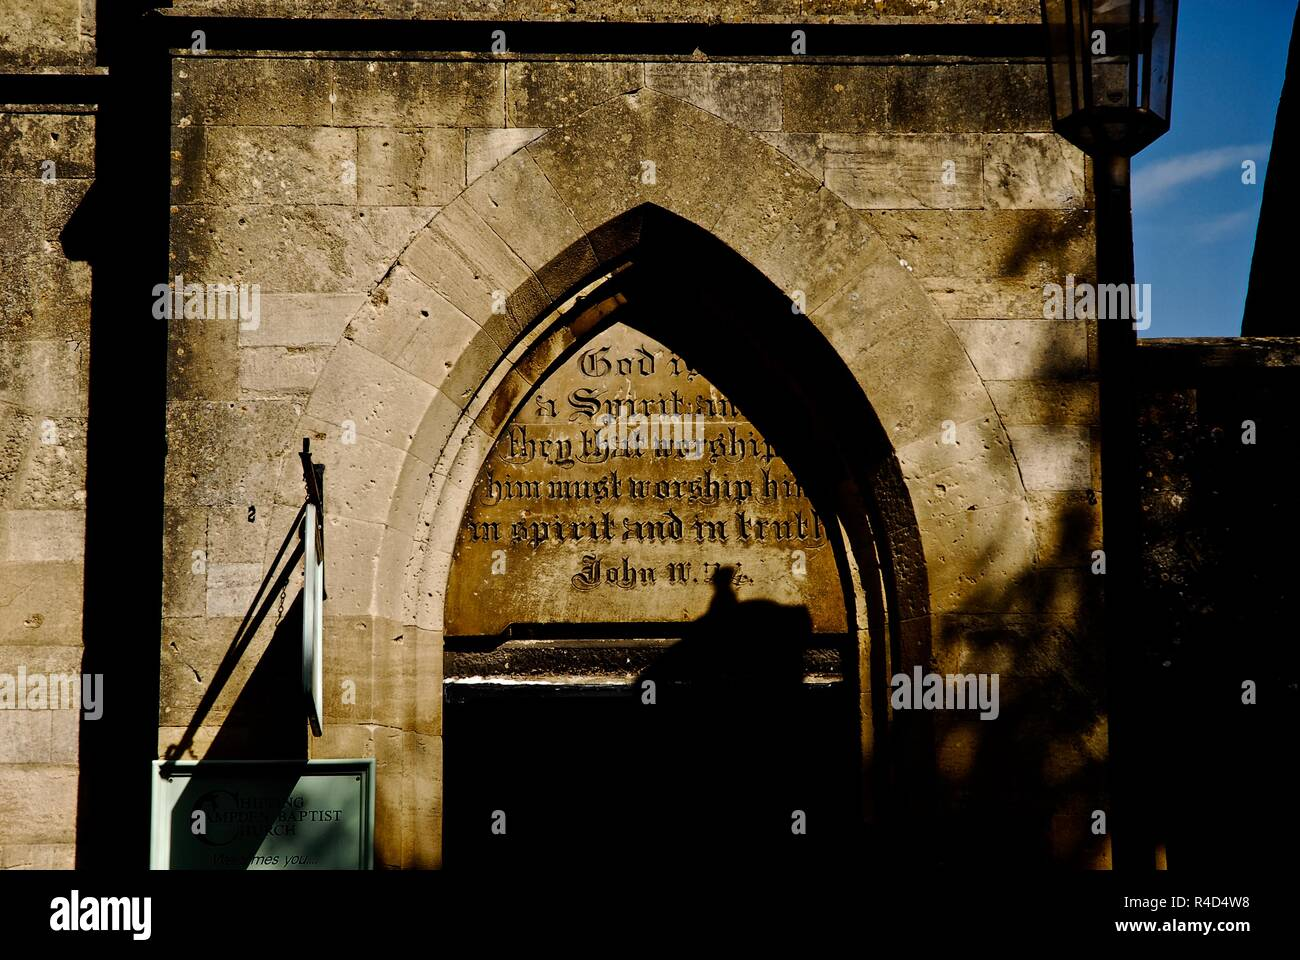 The Chipping Campden Baptist Church in the market town of Chipping Campden, Gloucestershire, UK - Stock Image